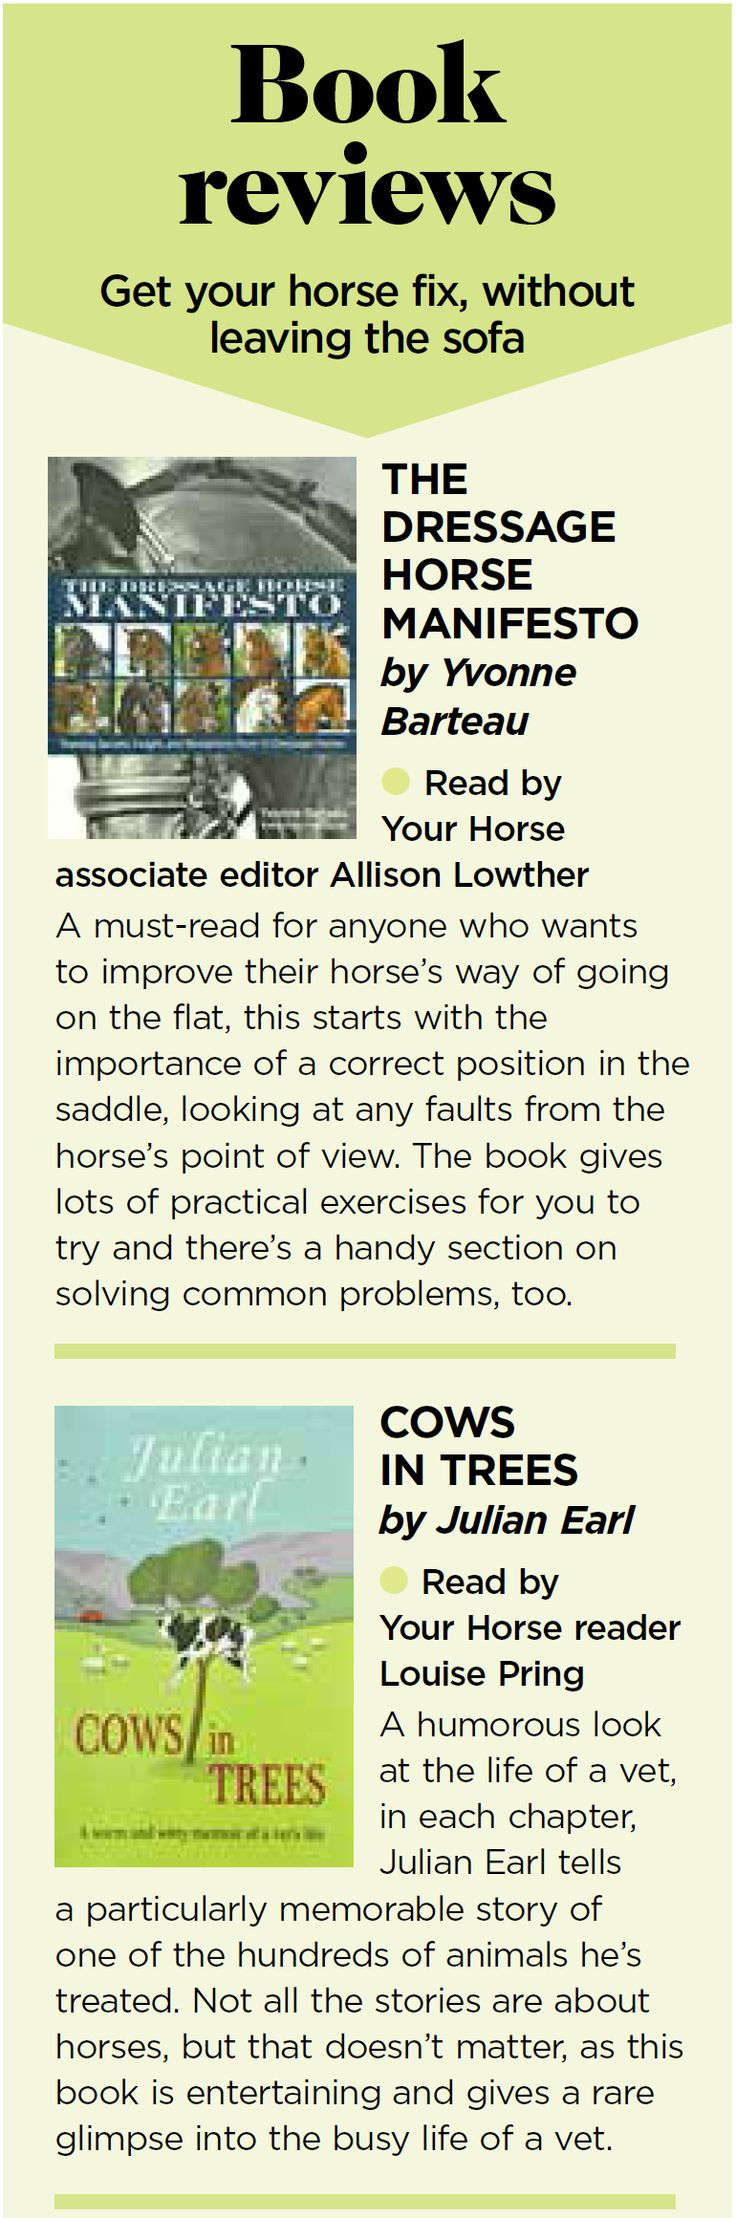 Your Horse review Cows in Trees and The Dressage Horse Manifesto